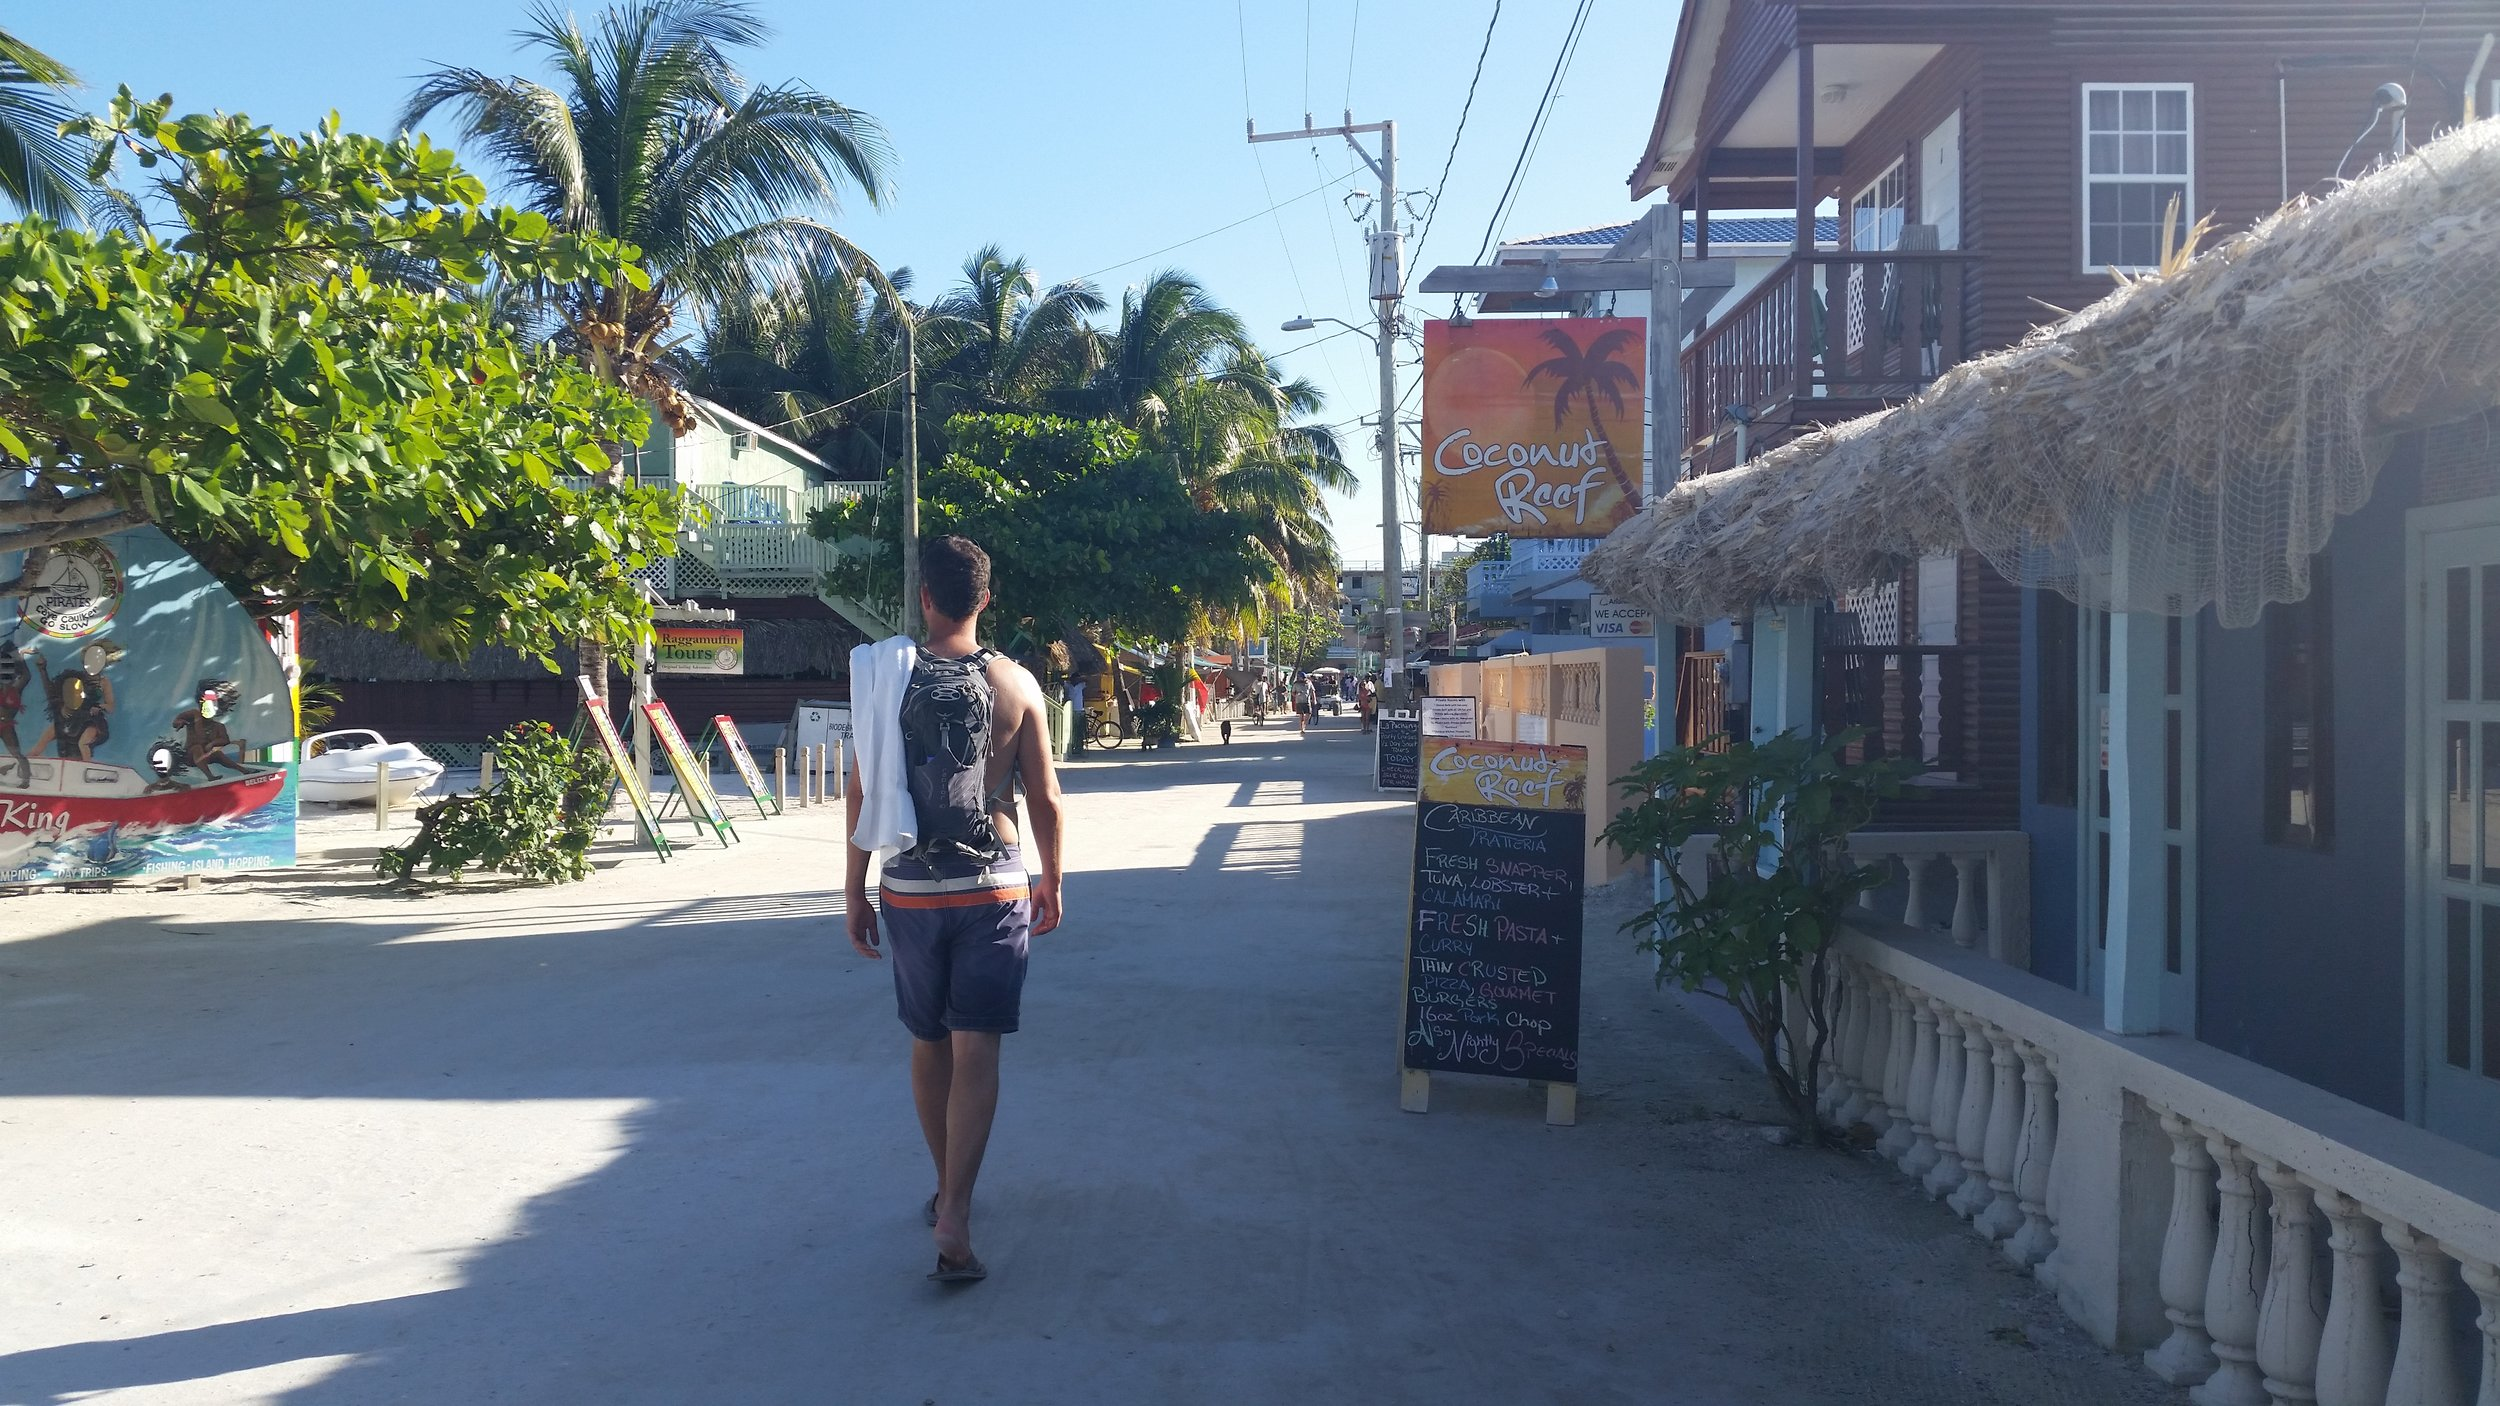 Wandering the streets of Caye Caulker